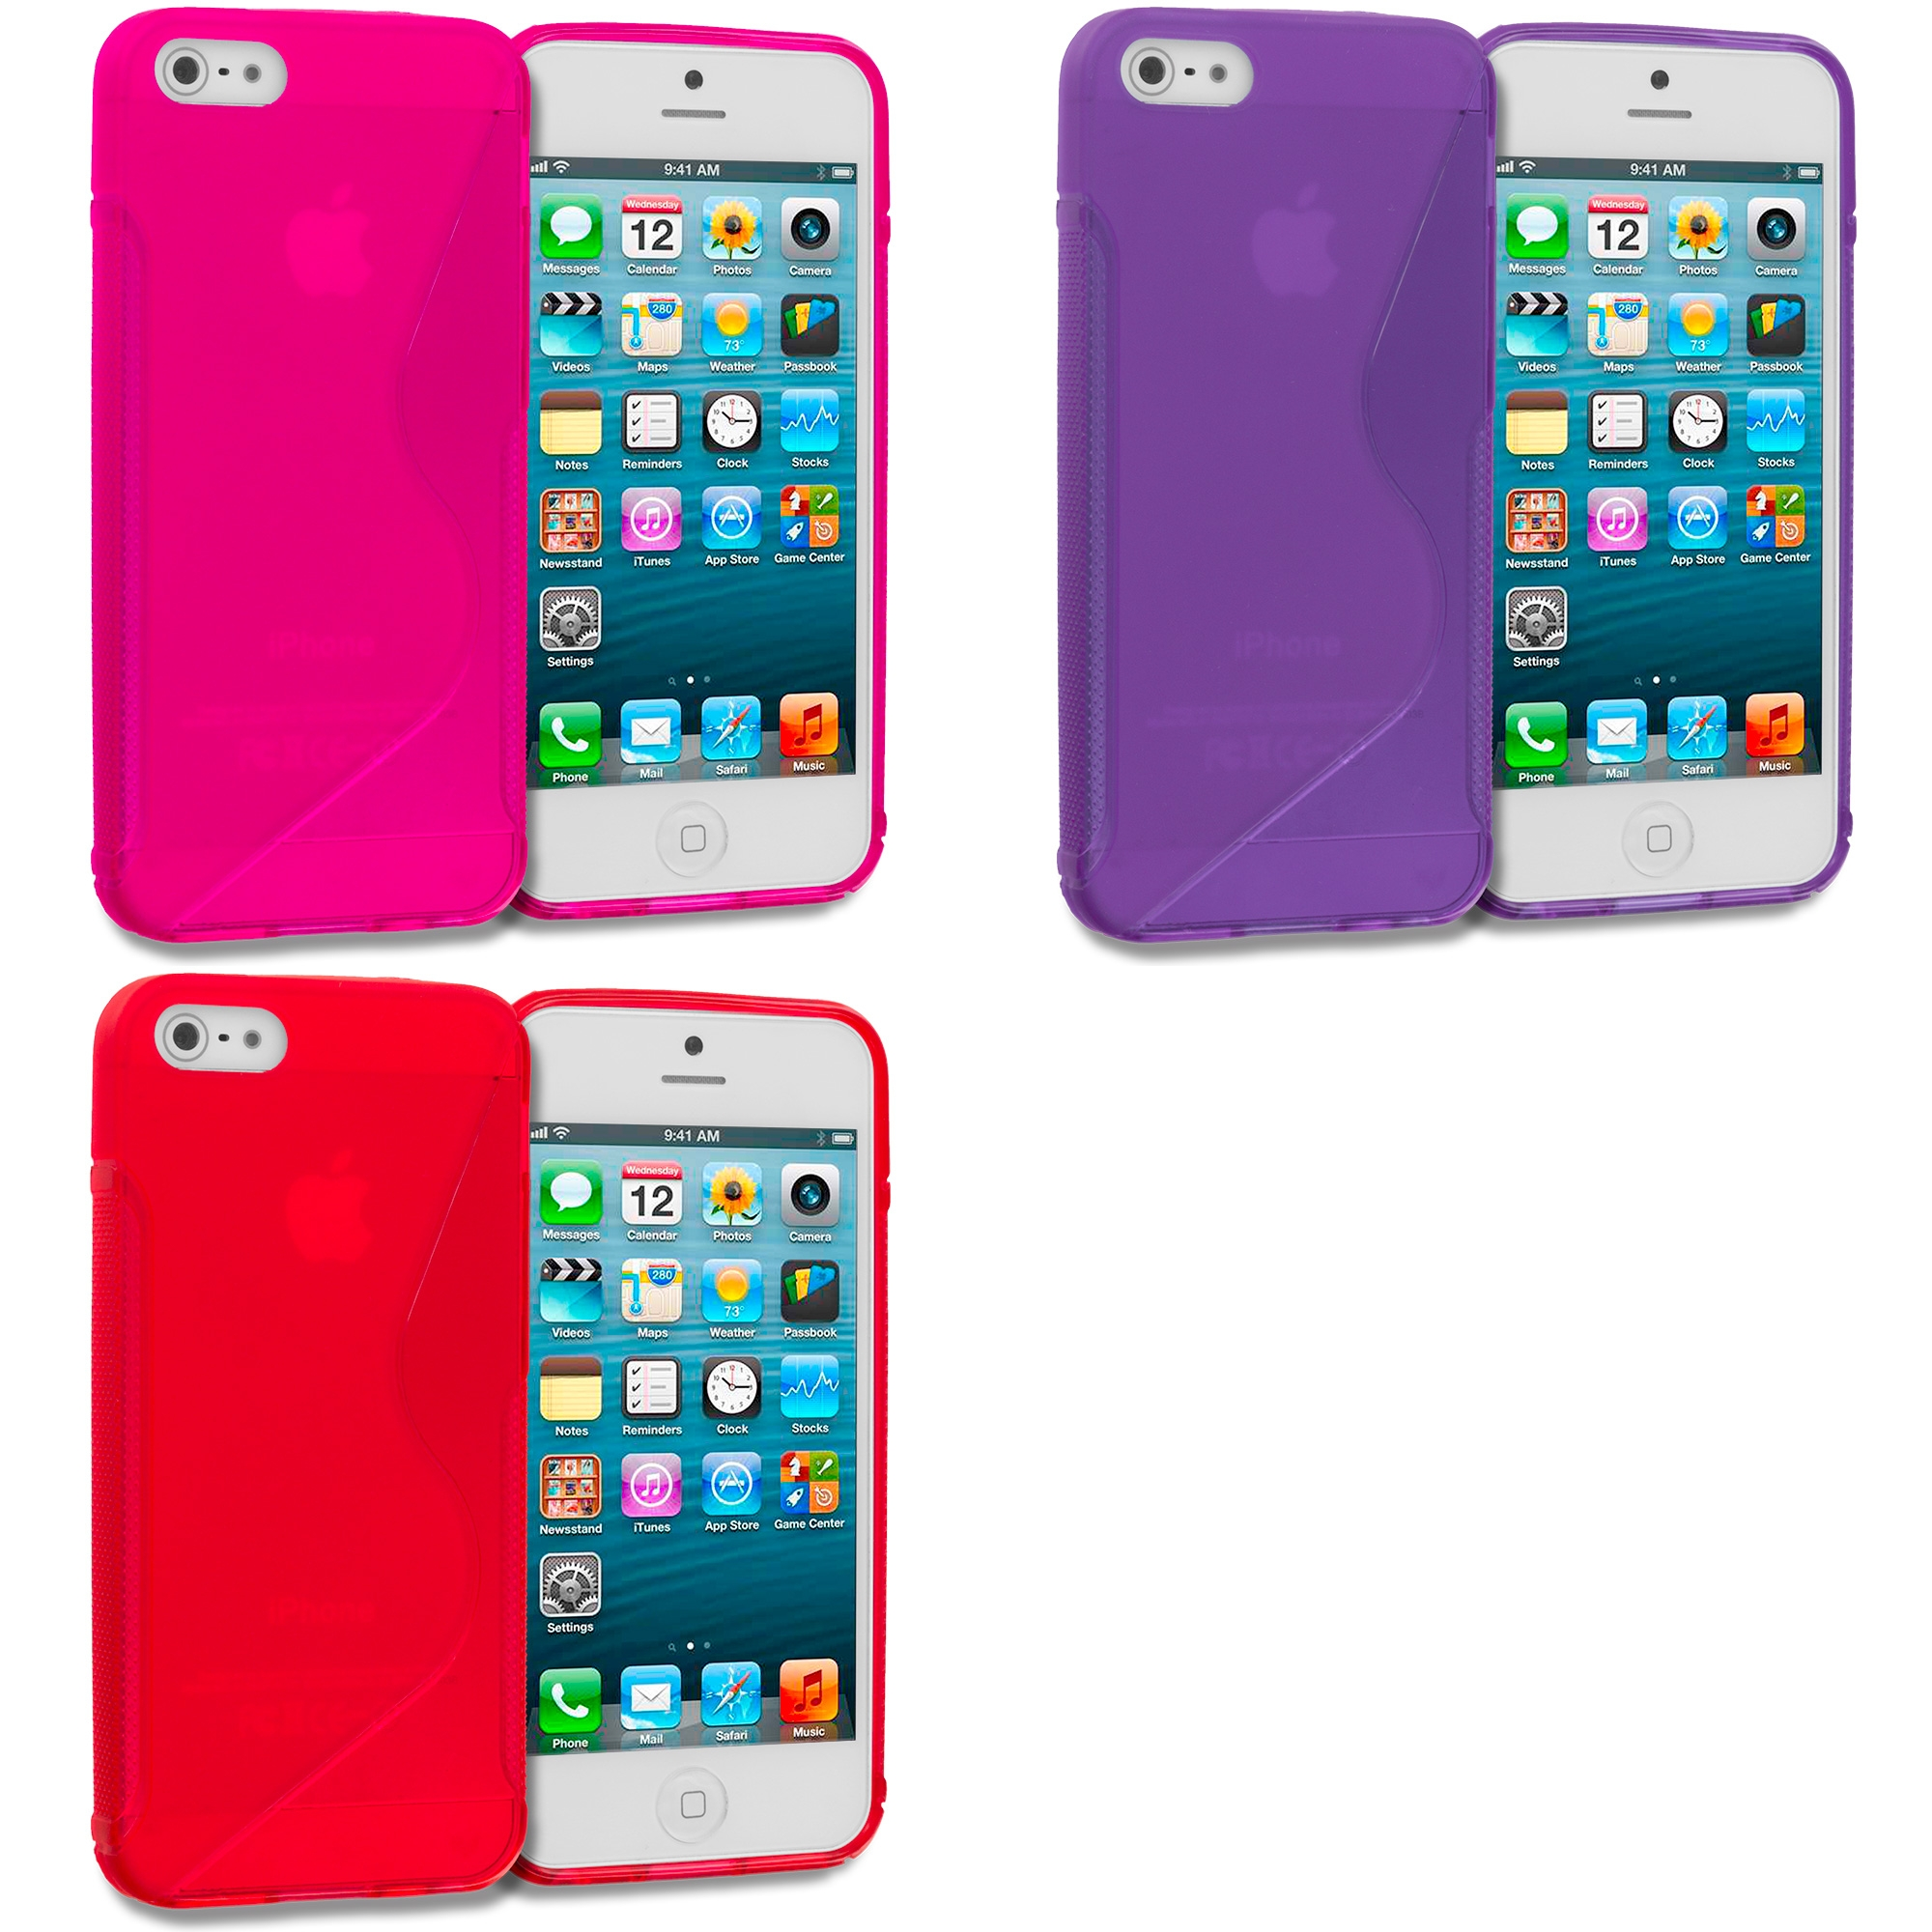 Apple iPhone 5 Combo Pack : Hot Pink S-Line TPU Rubber Skin Case Cover